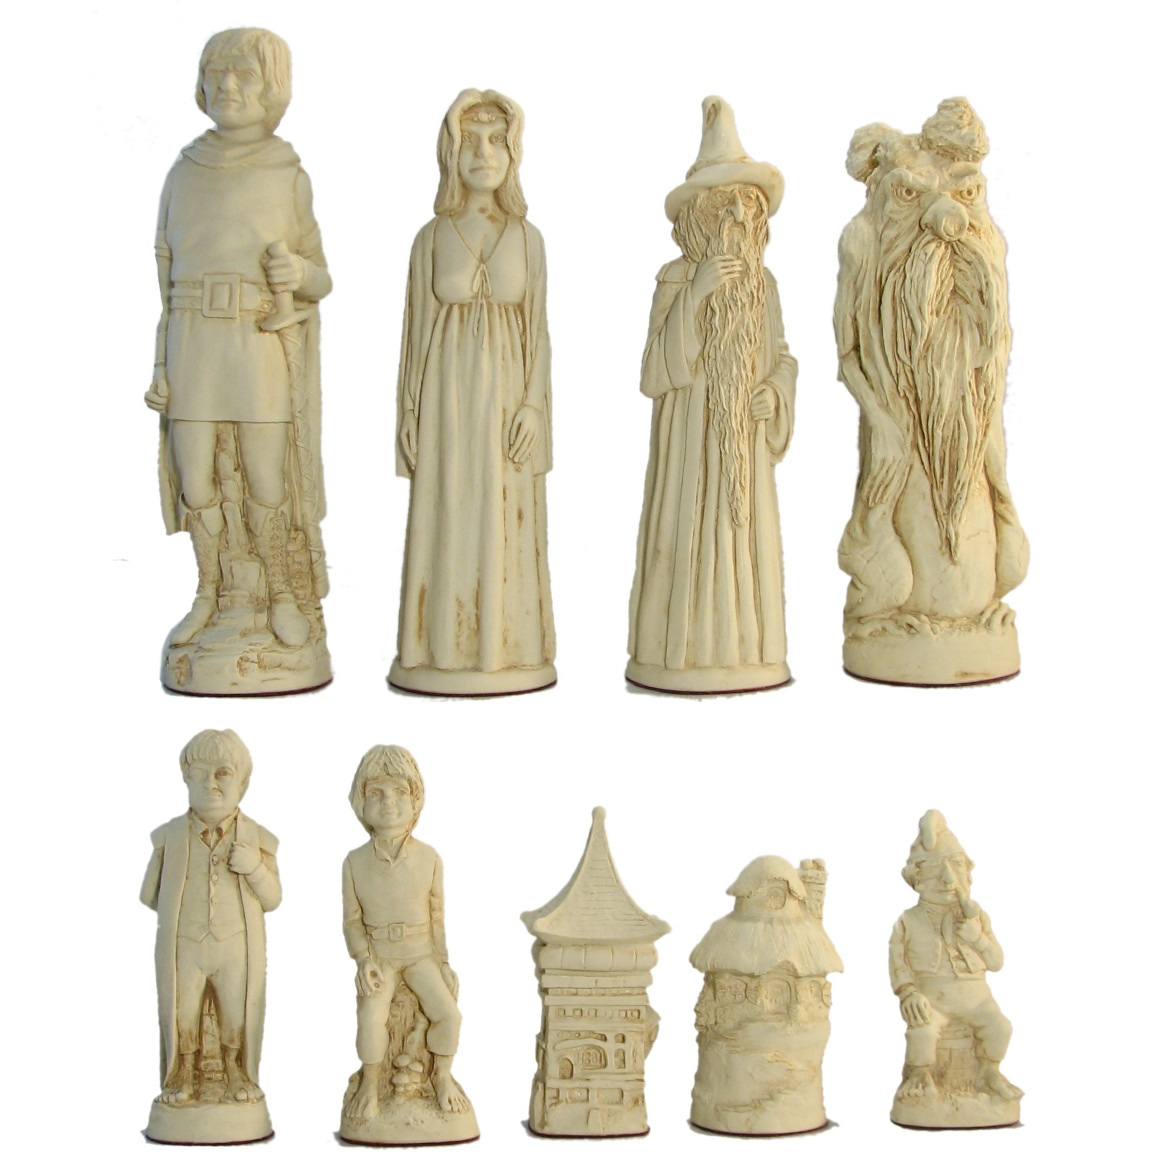 7 Quot Large Lord Of The Rings Crushed Stone Chess Pieces